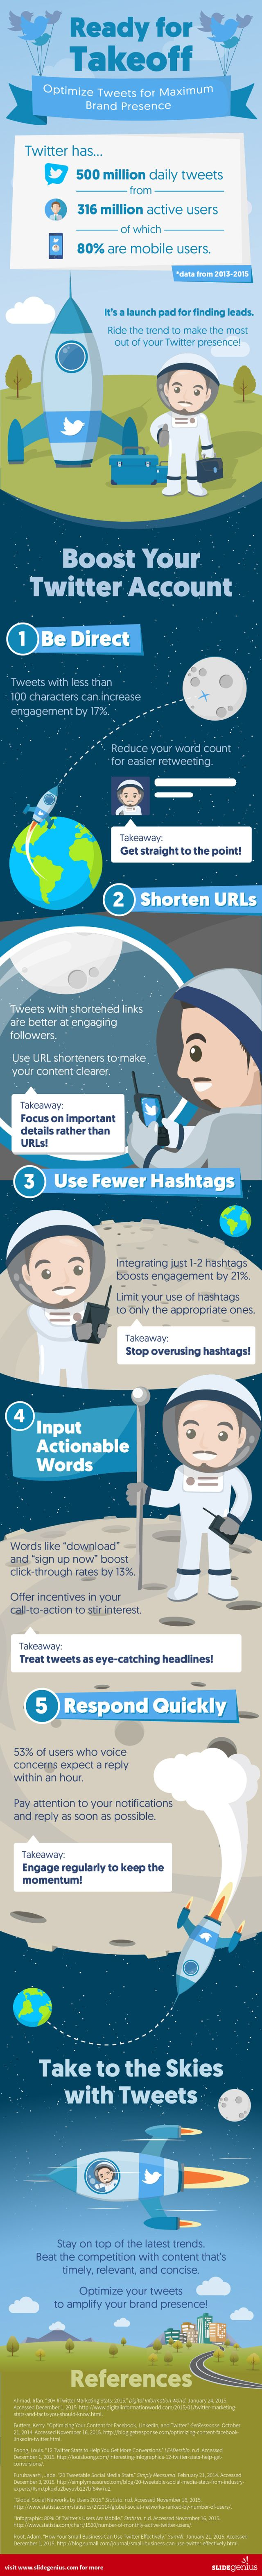 Tips for effective #marketing and grab audience in #twitter